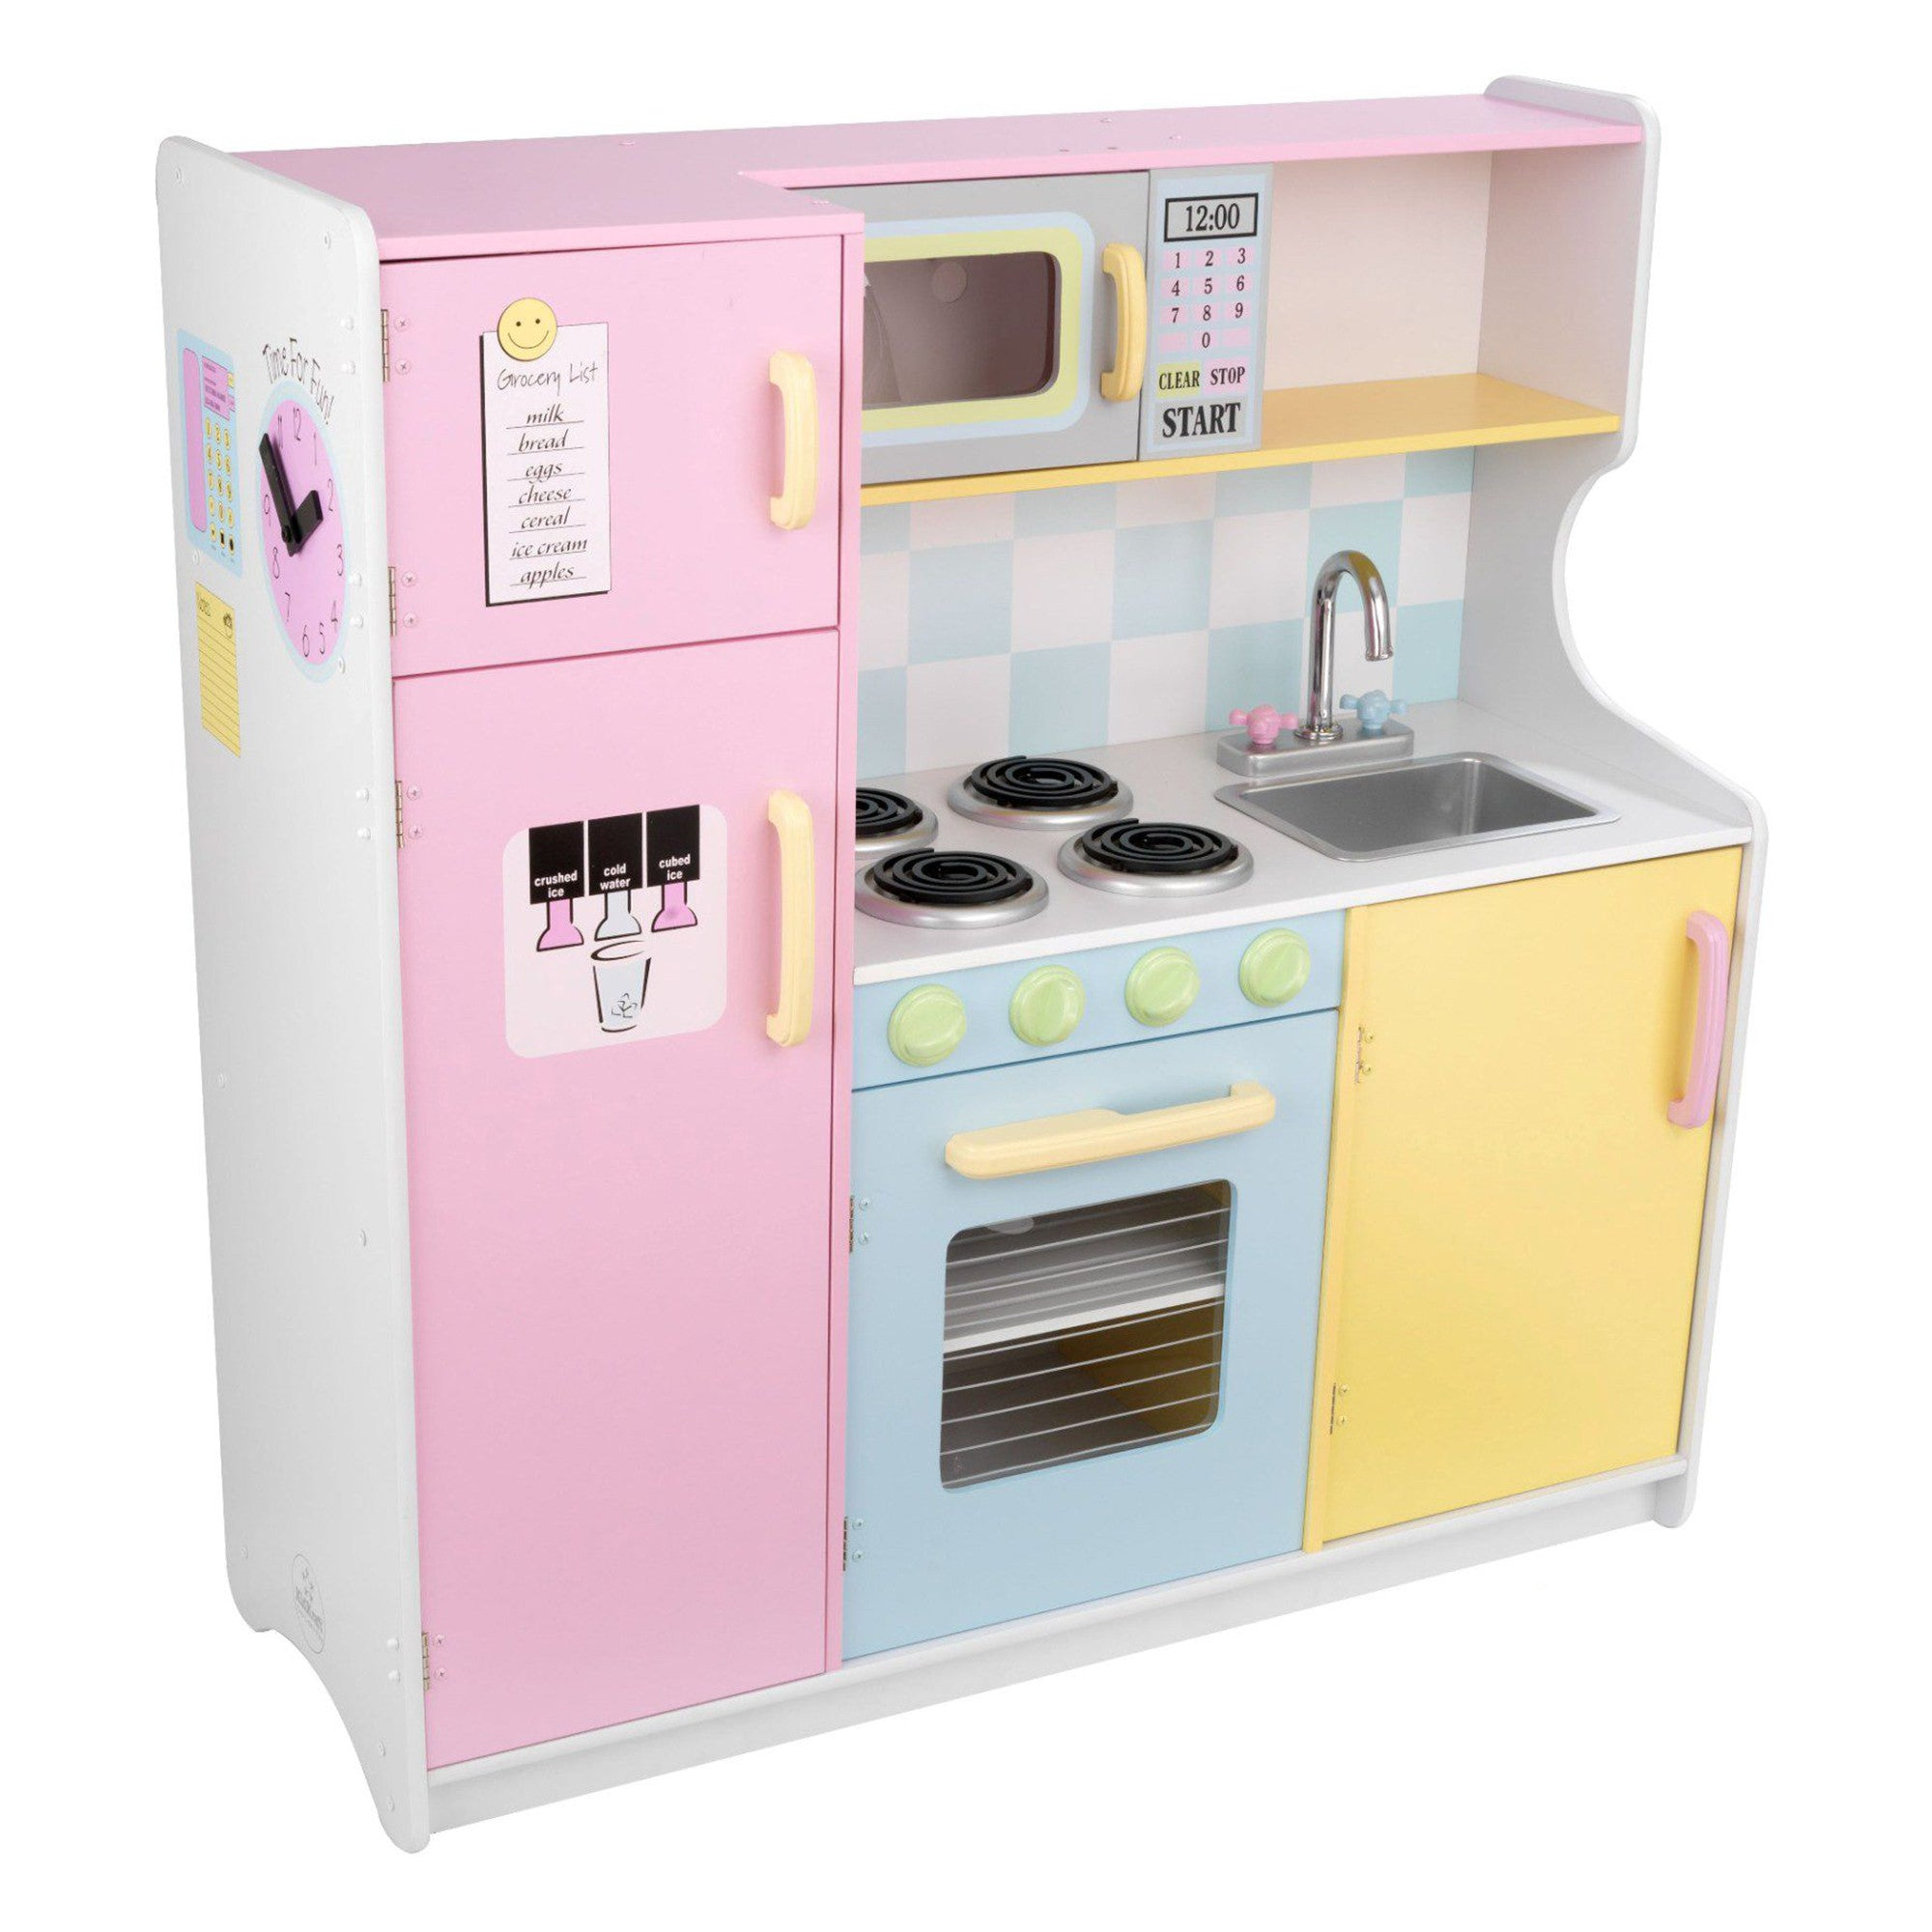 Kidkraft Large and Pastel Kitchen for Kids Kidkraft Toy Kitchens & Play Food at Little Earth Nest Eco Shop